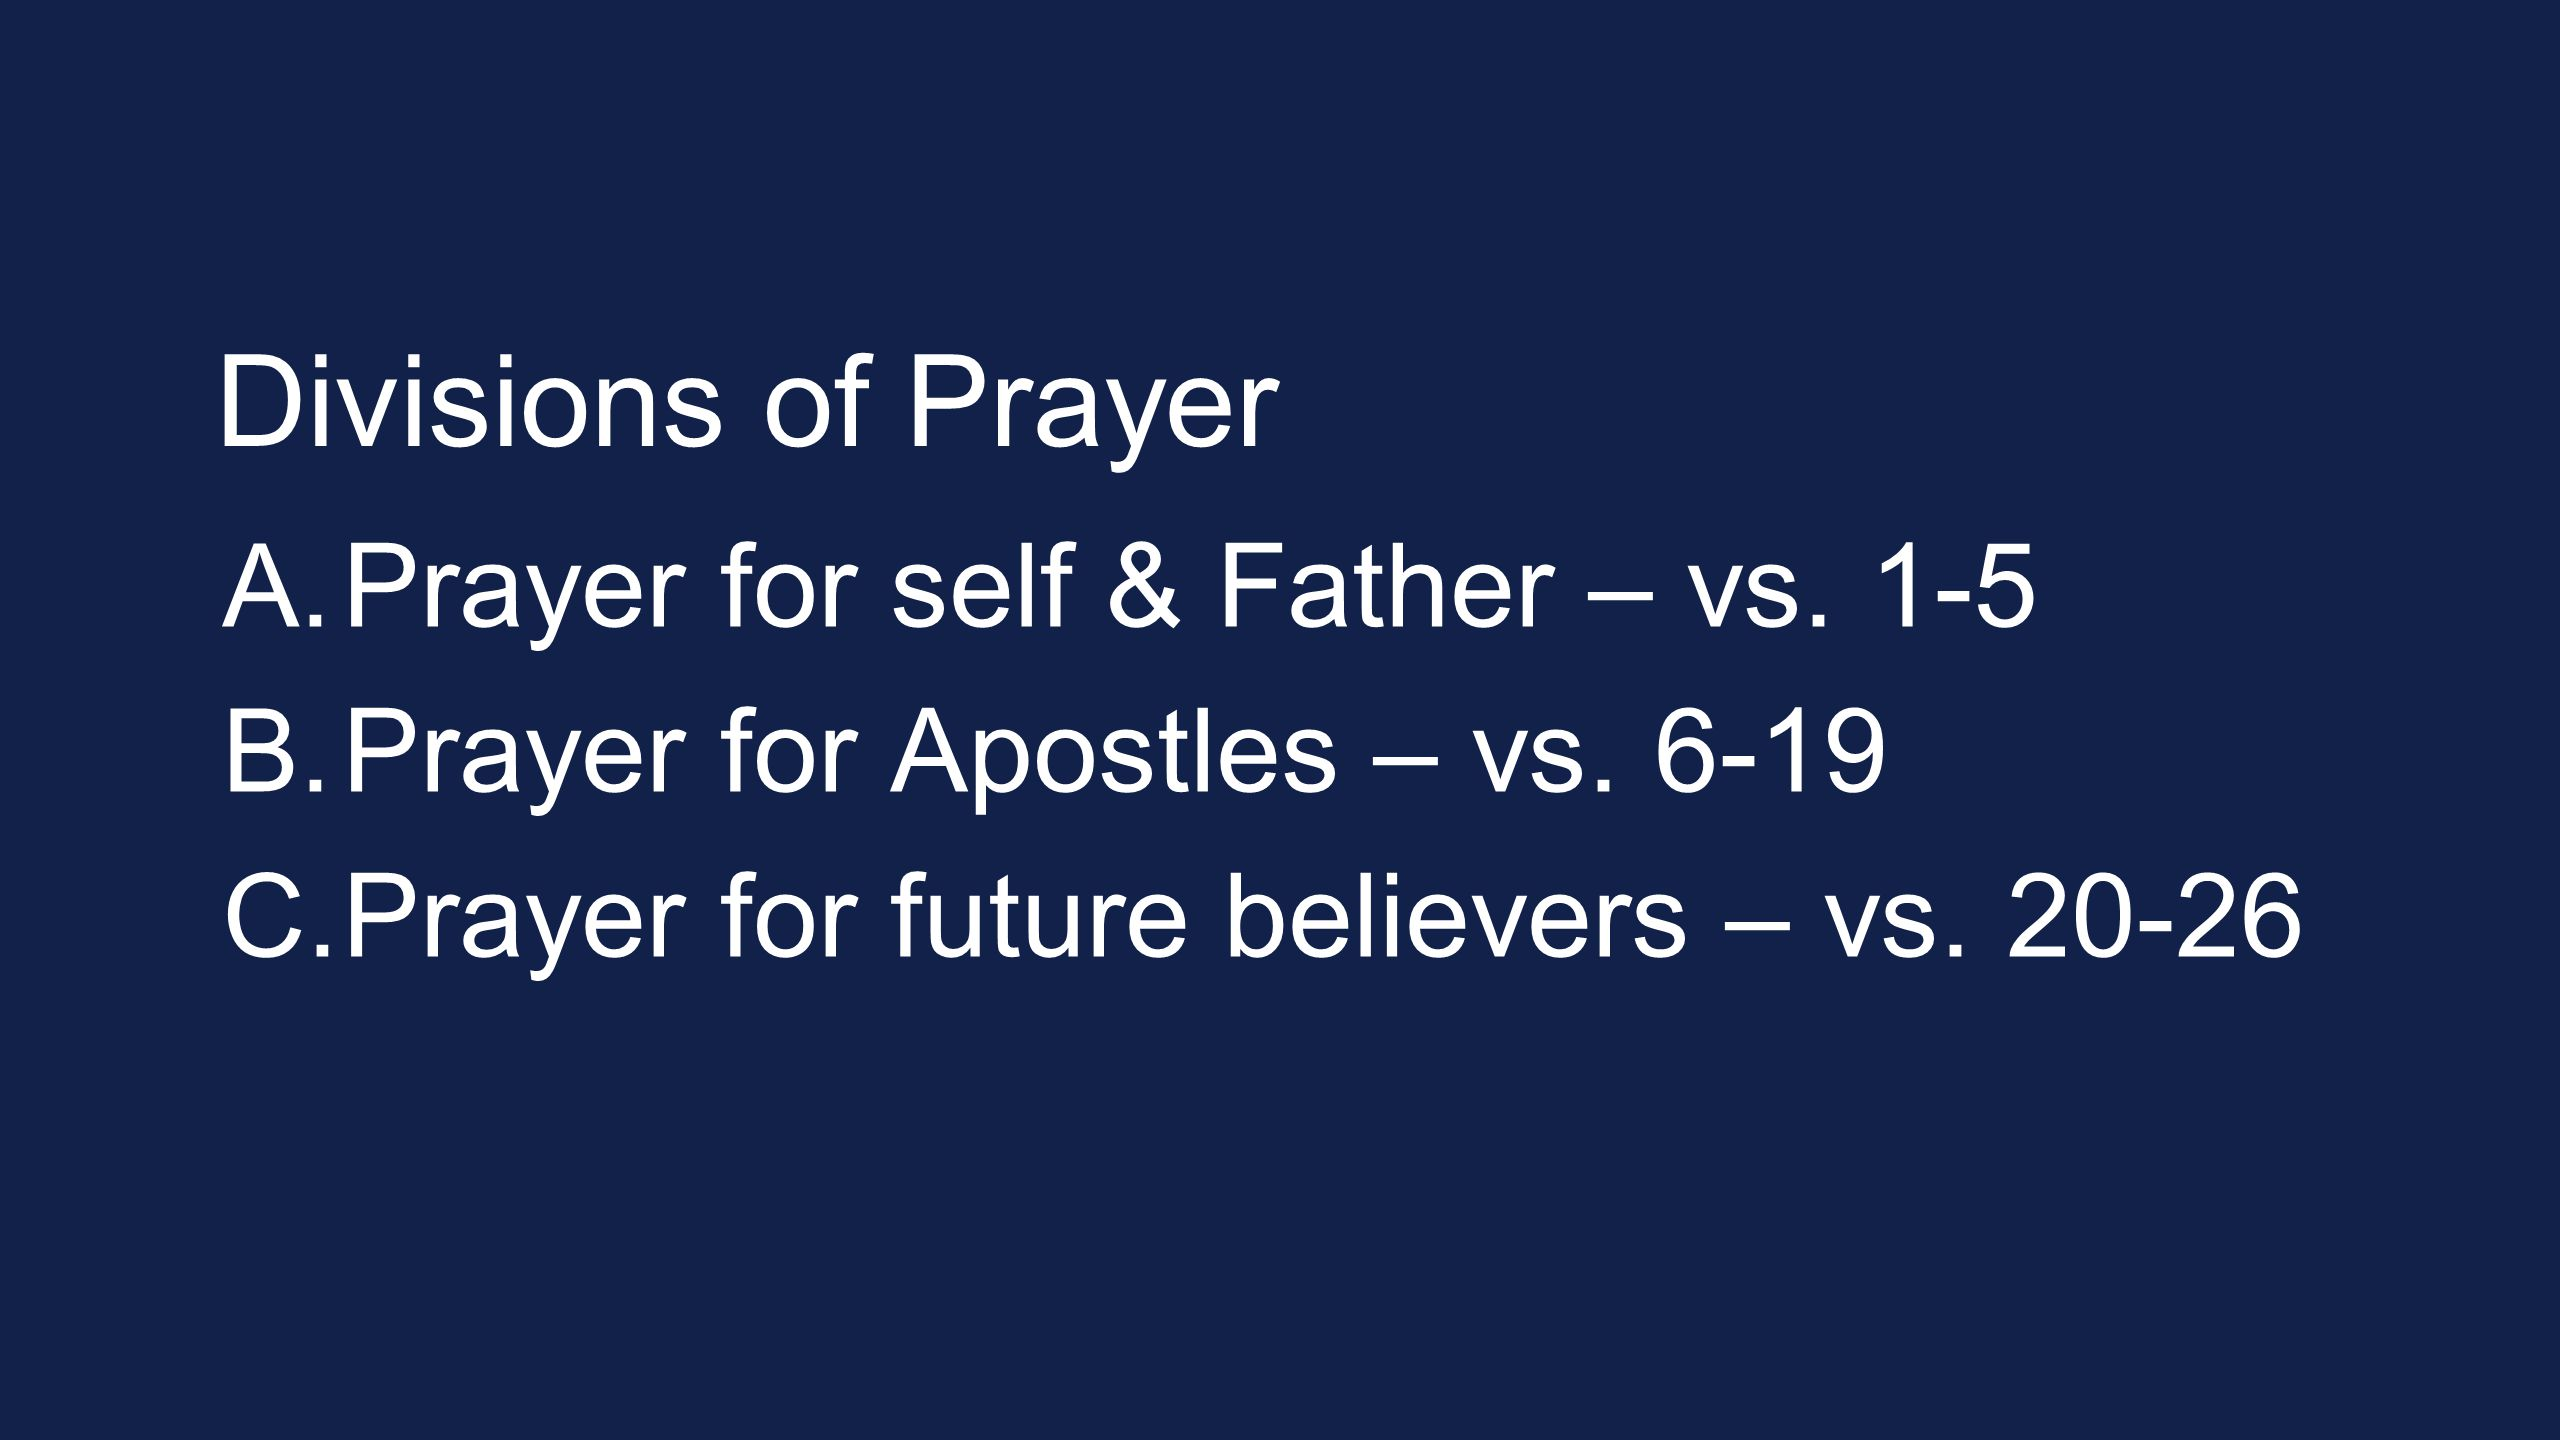 Divisions of Prayer A. Prayer for self & Father – vs. 1-5 B. Prayer for Apostles – vs. 6-19 C. Prayer for future believers – vs. 20-26